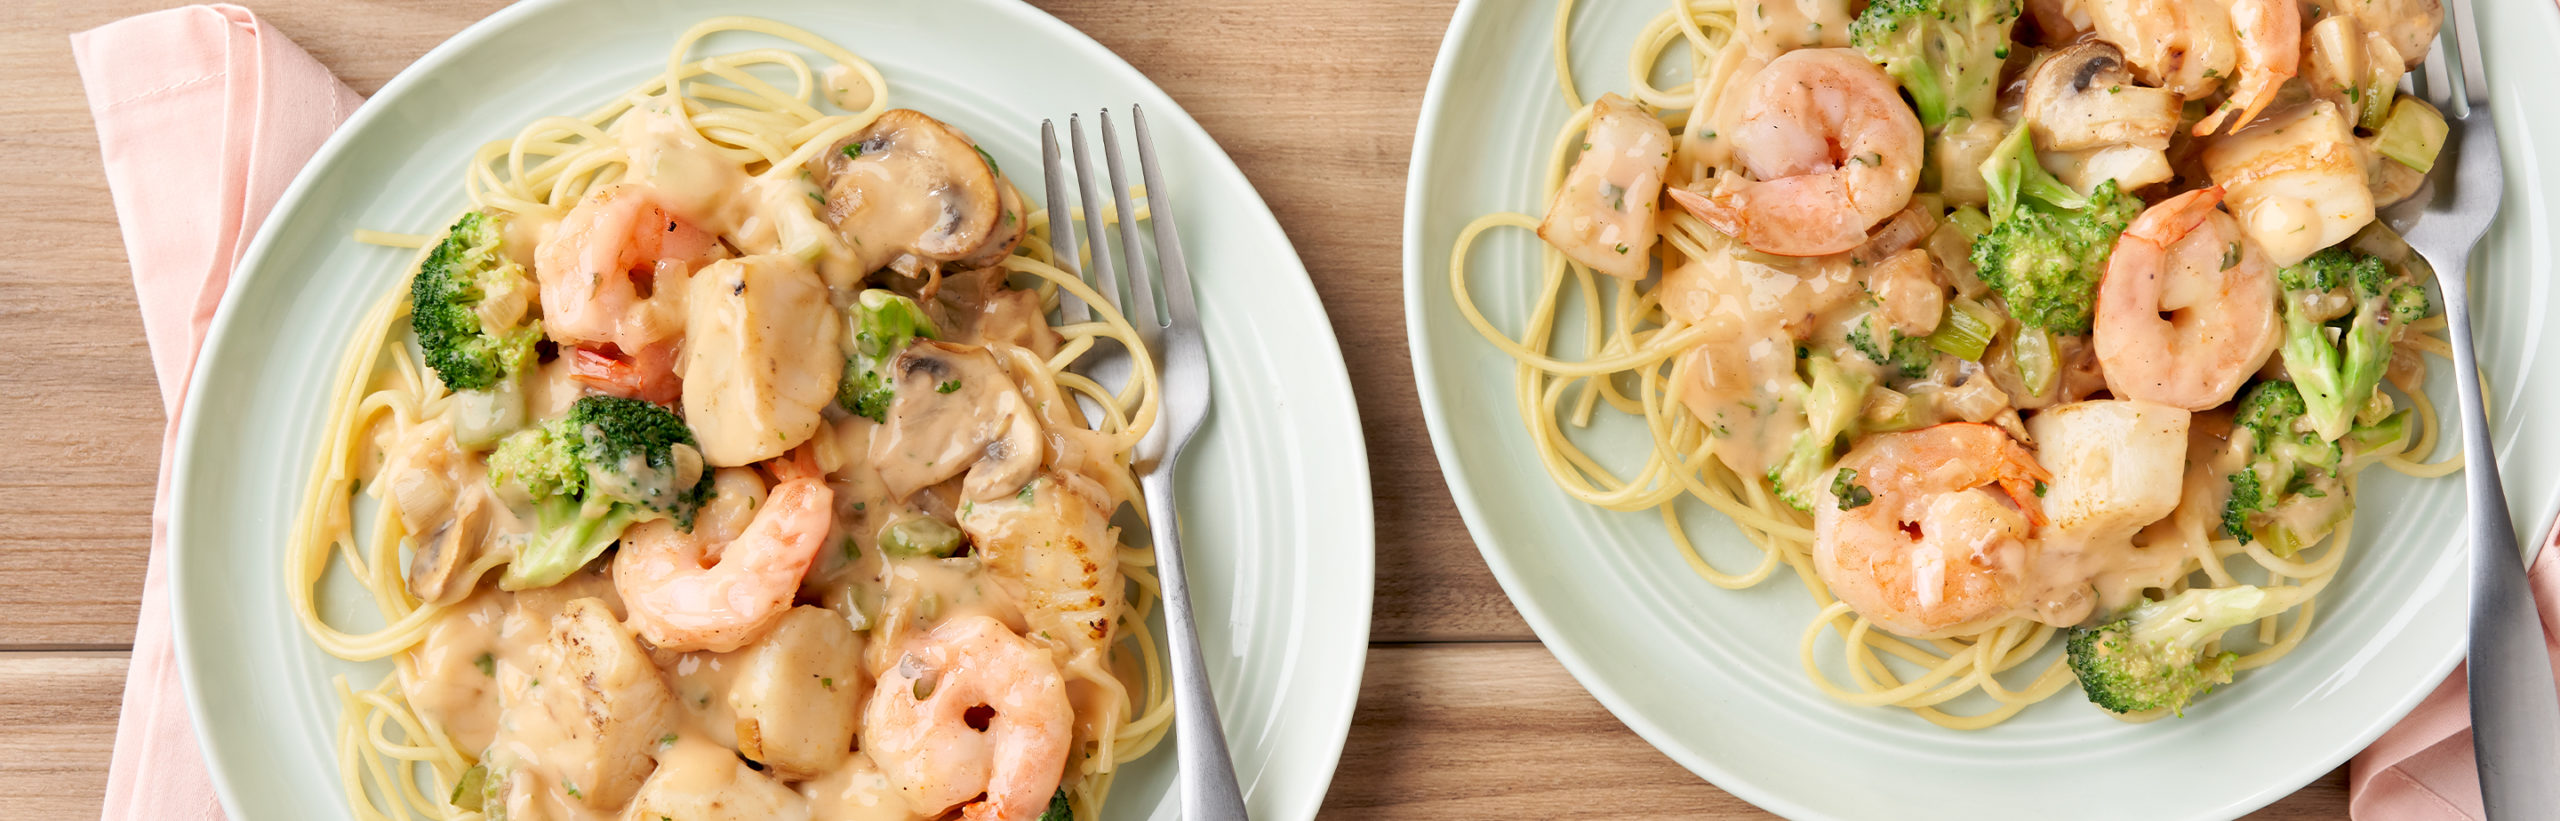 creamy seafood medley with pasta - campbell soup company